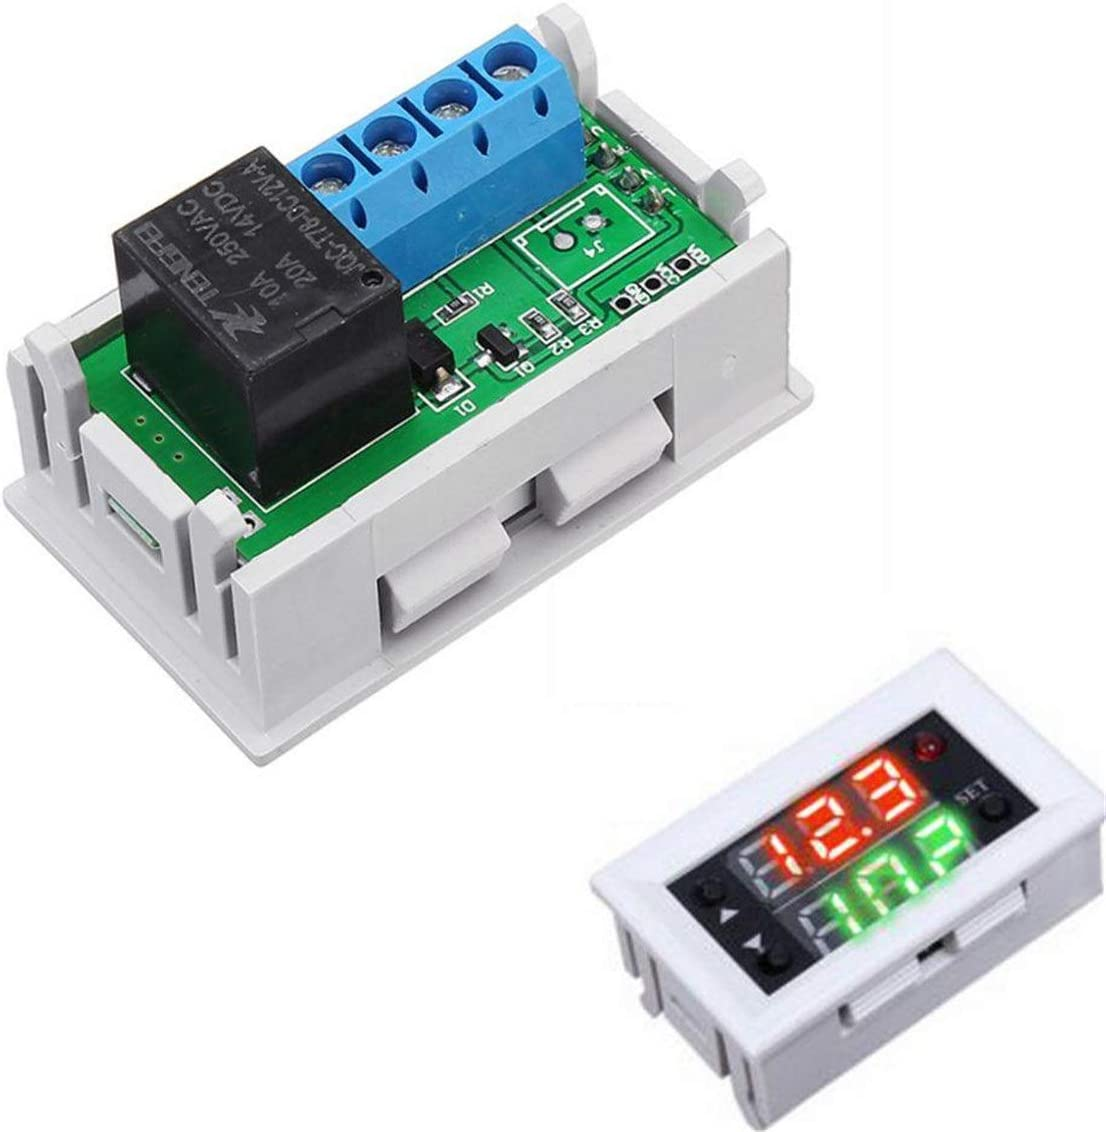 LLLNHQ 12V 20A Digital LED Dual Display Timer Relay Module with Case Timing Delay C ycle PC Board Relays